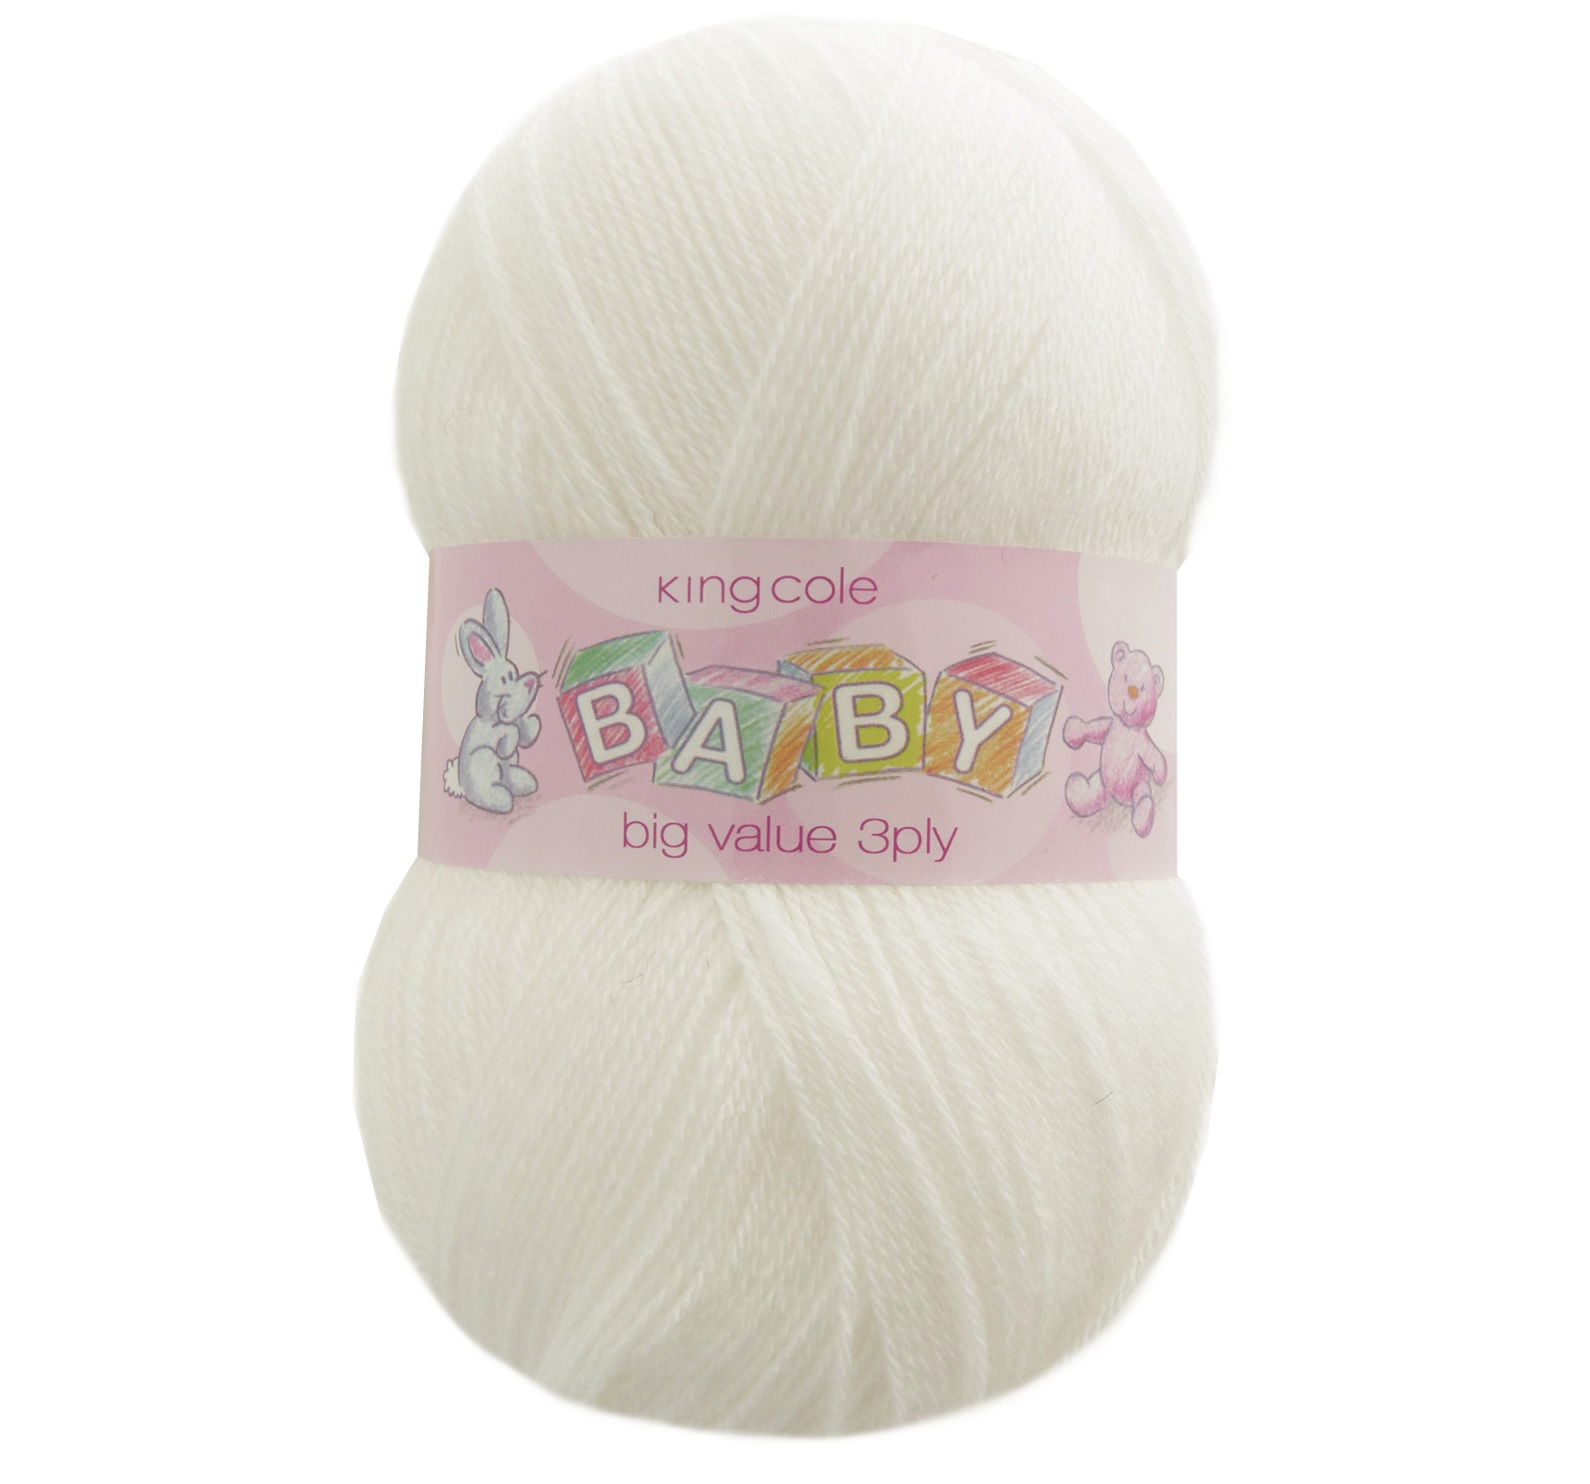 Big Value Baby 3 Ply Acrylic Yarn King Cole 100g Ball Wool Free ...